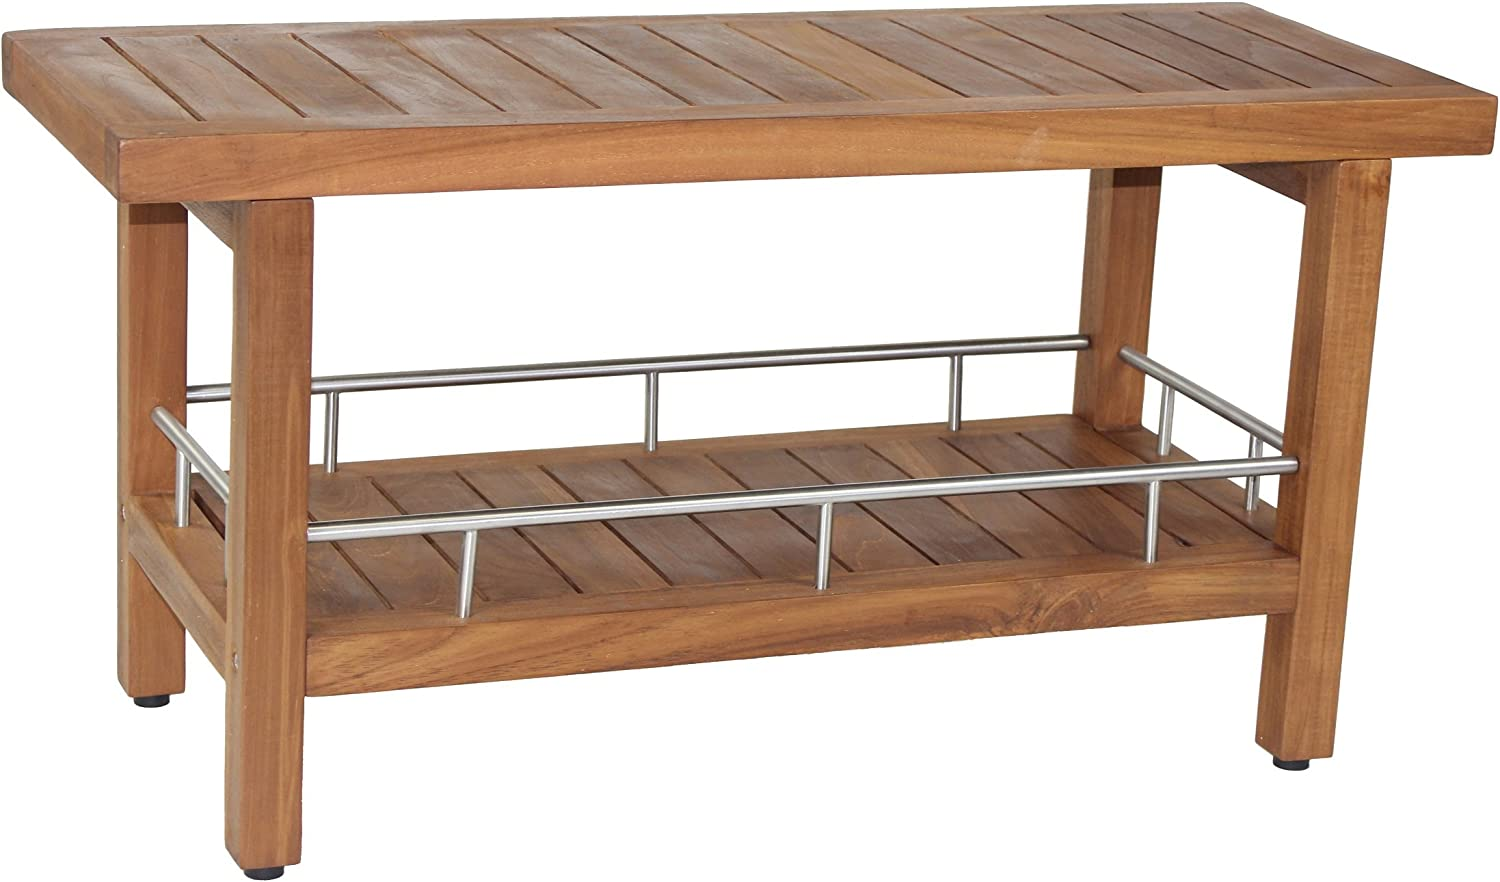 "B00BUUMMO6 AquaTeak Patented 36"" Spa Teak & Stainless Shower Bench with Shelf 81cKxBV3yBL"